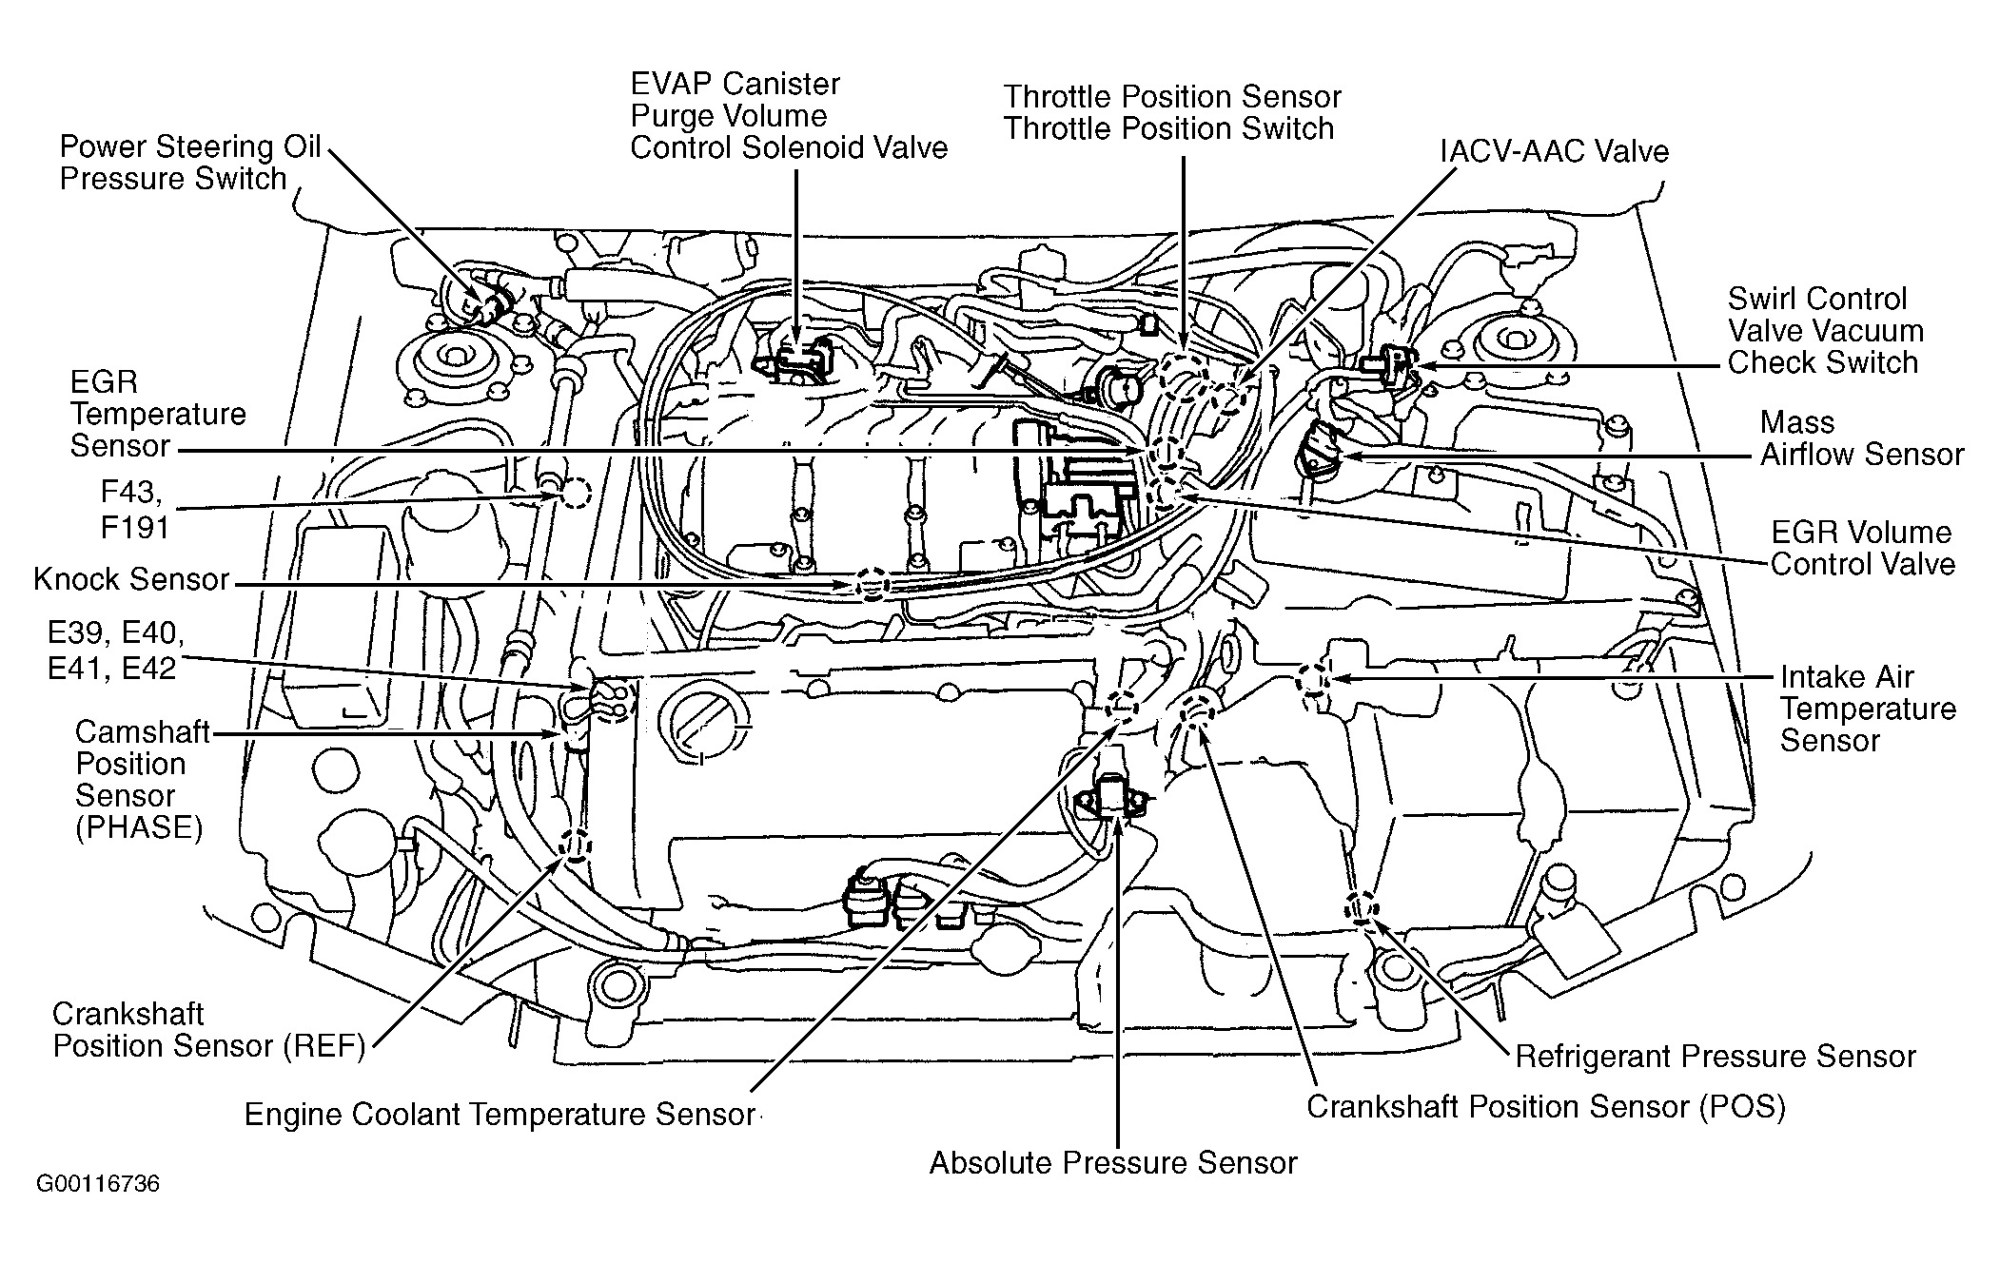 hight resolution of 2005 chrysler 300 knock sensor im try 2 locate my knock sensor on rh 2carpros com 2006 dodge charger engine diagram 2004 chrysler sebring engine diagram